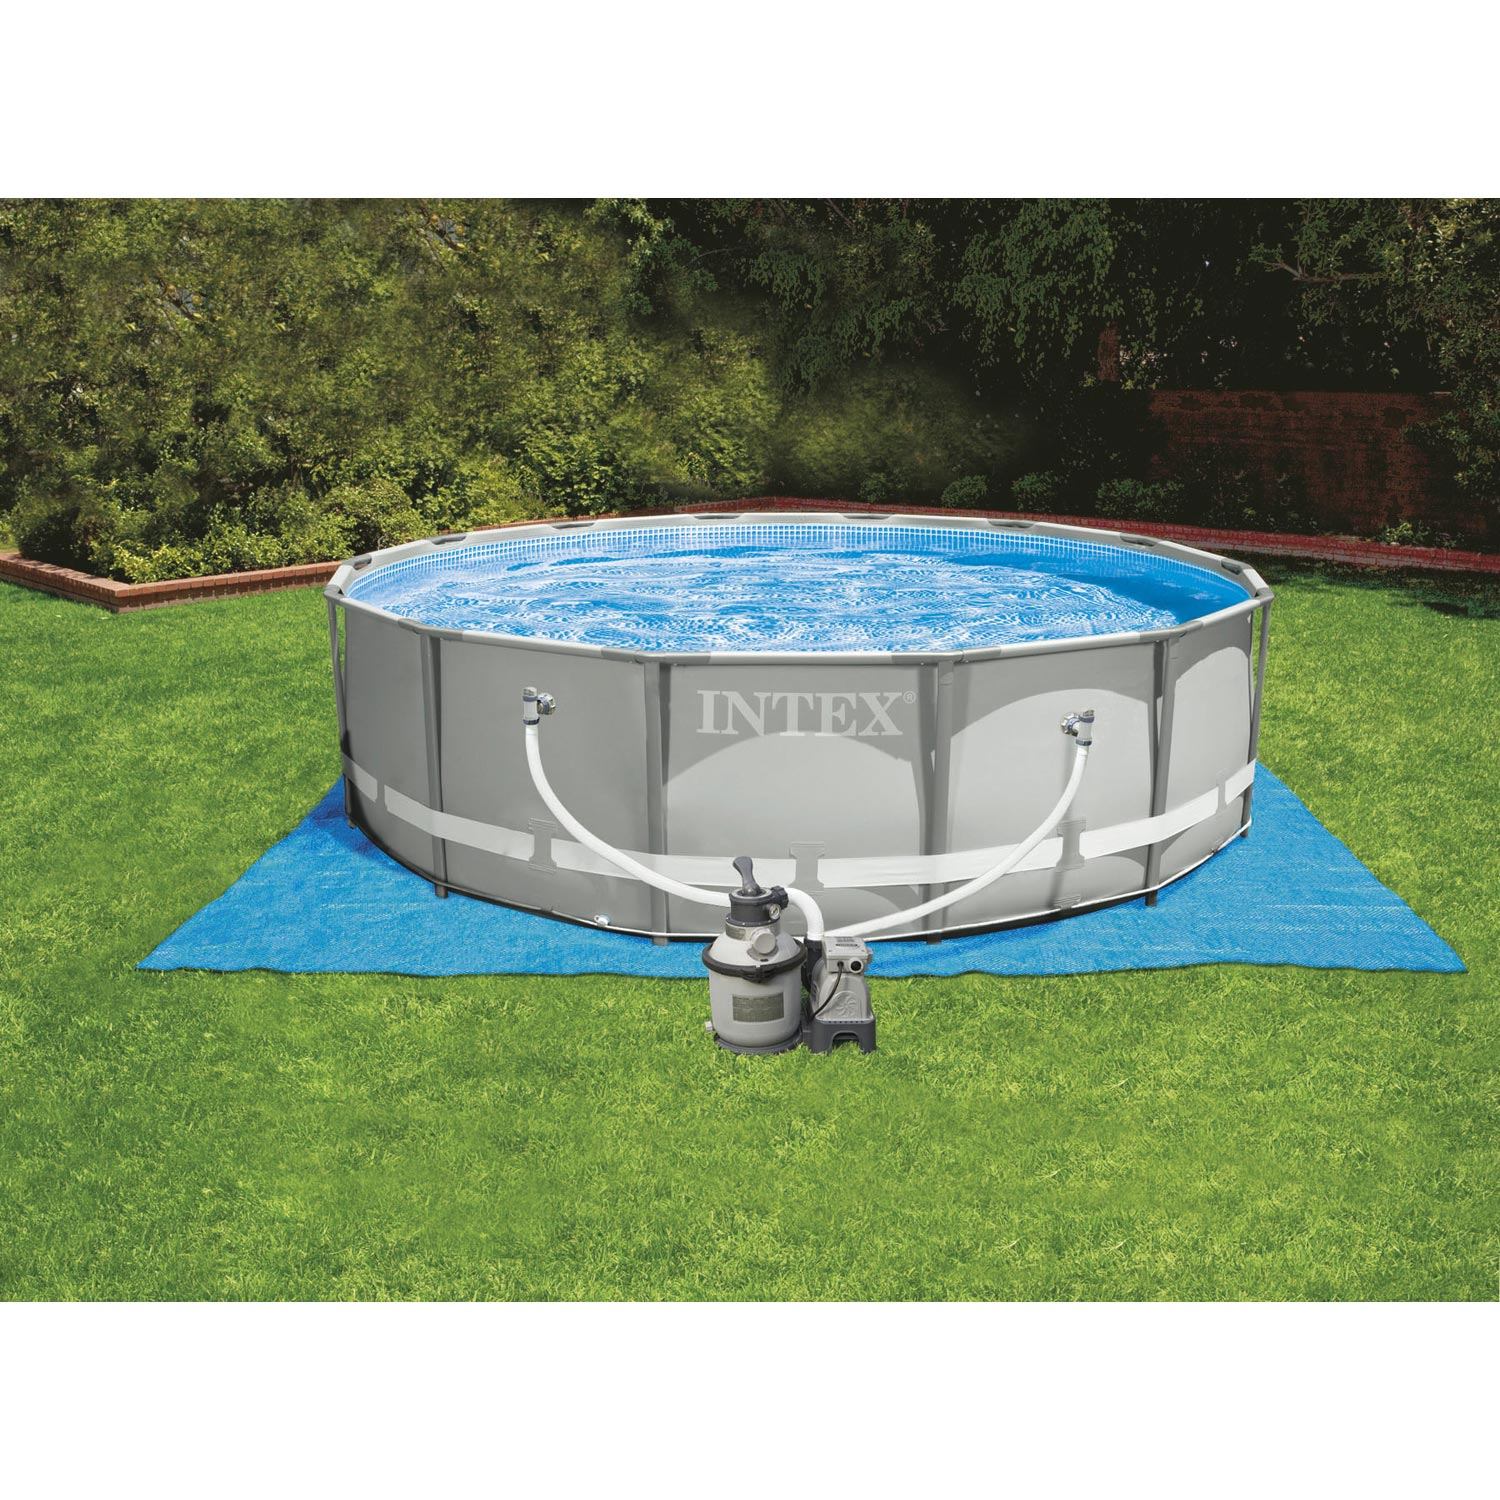 Piscine hors sol autoportante tubulaire ultra frame intex for Norme piscine hors sol